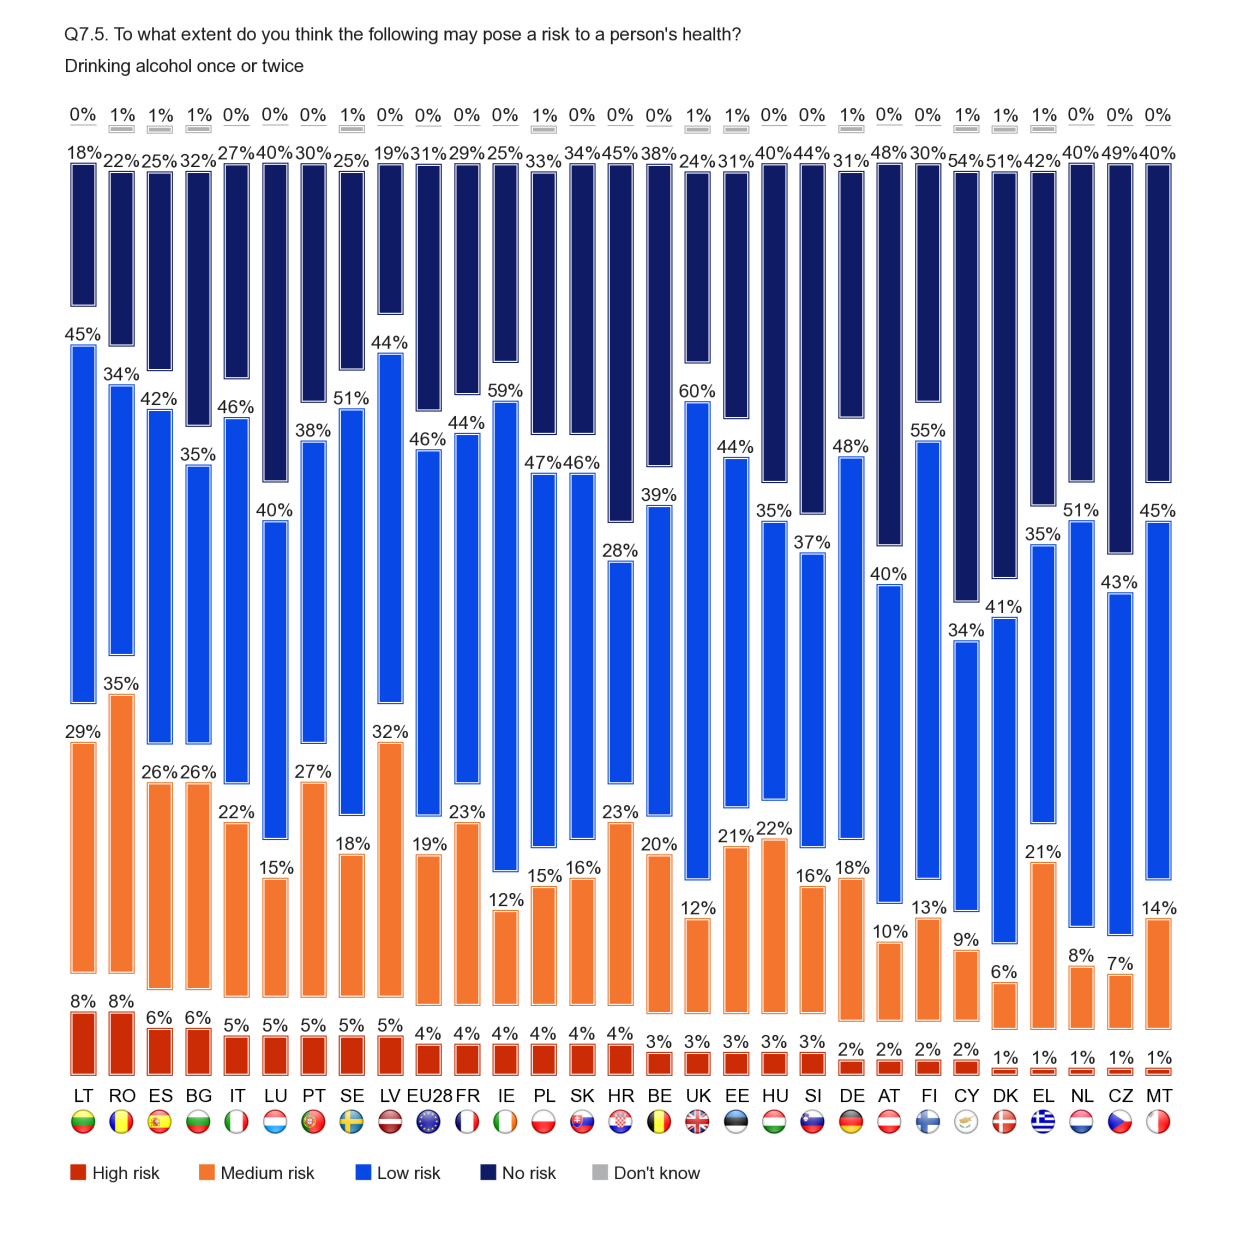 FLASH EUROBAROMETER Fewer than one in ten respondents in any Member State thinks that drinking alcohol once or twice carries a high risk to health, with those in Lithuania and Romania the most likely